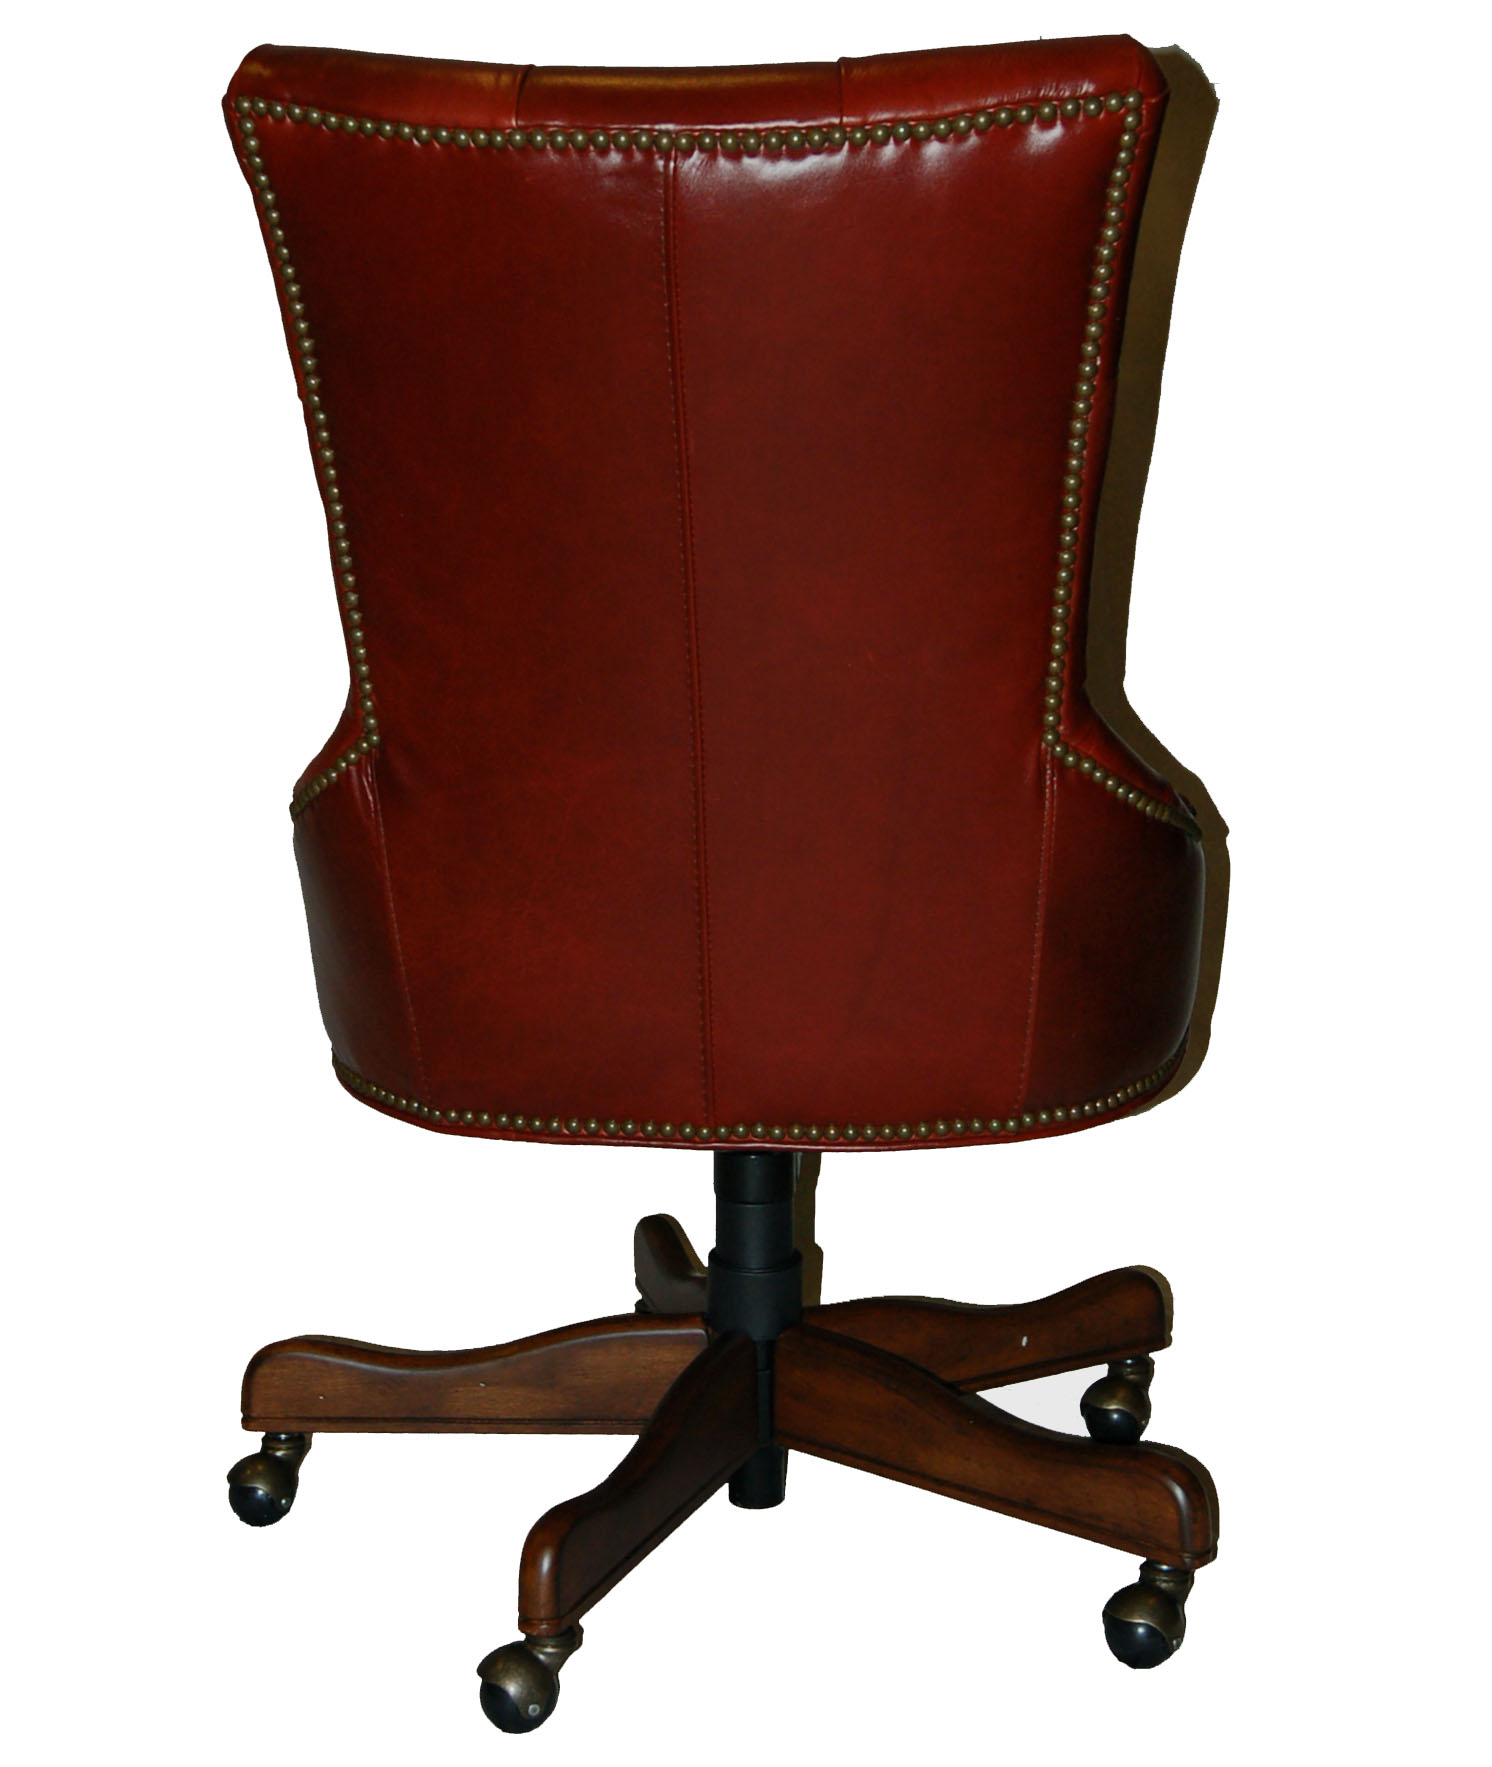 Red Leather Executive Office Desk Chair  eBay